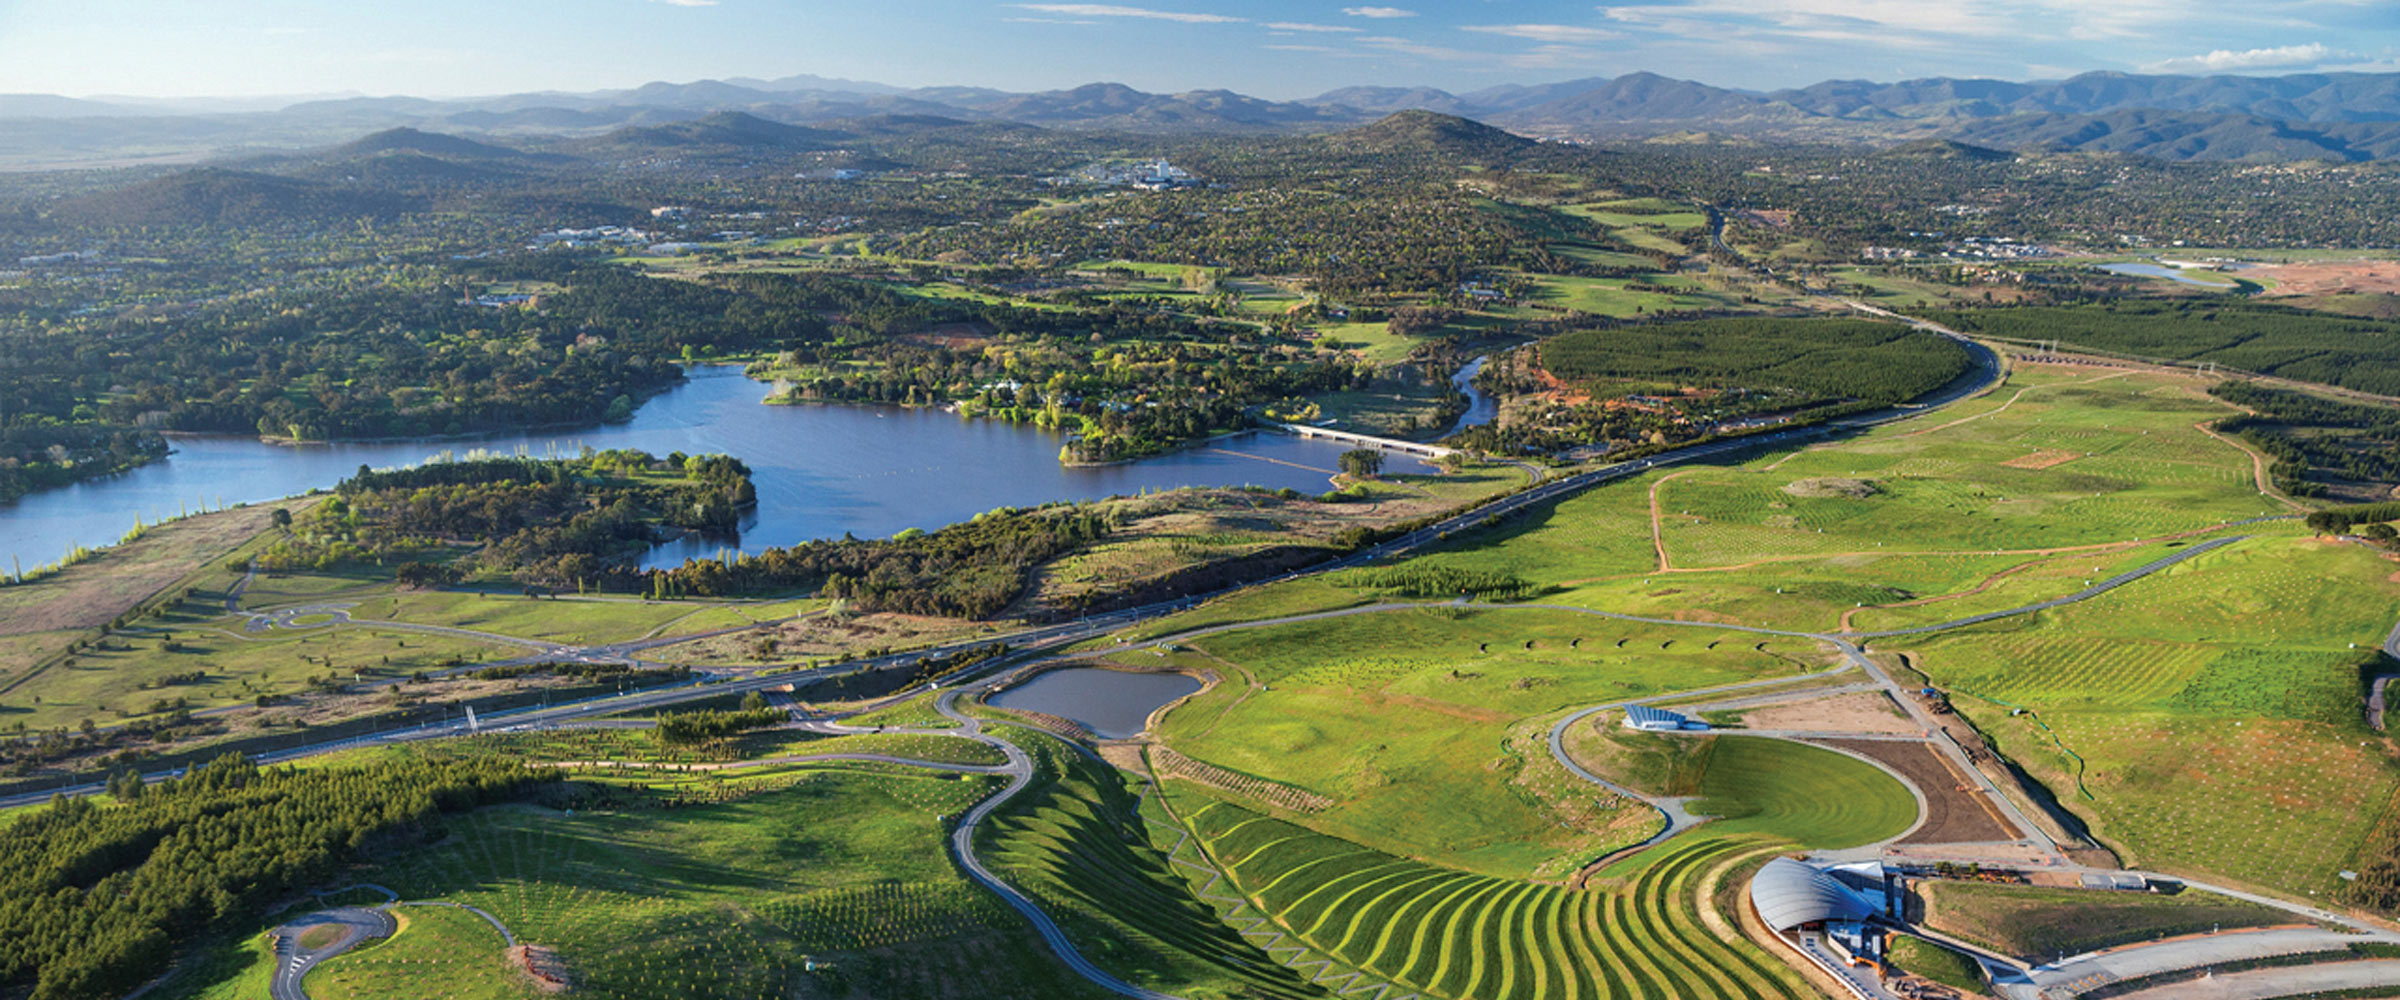 Aerial view of National Arboretum Canberra